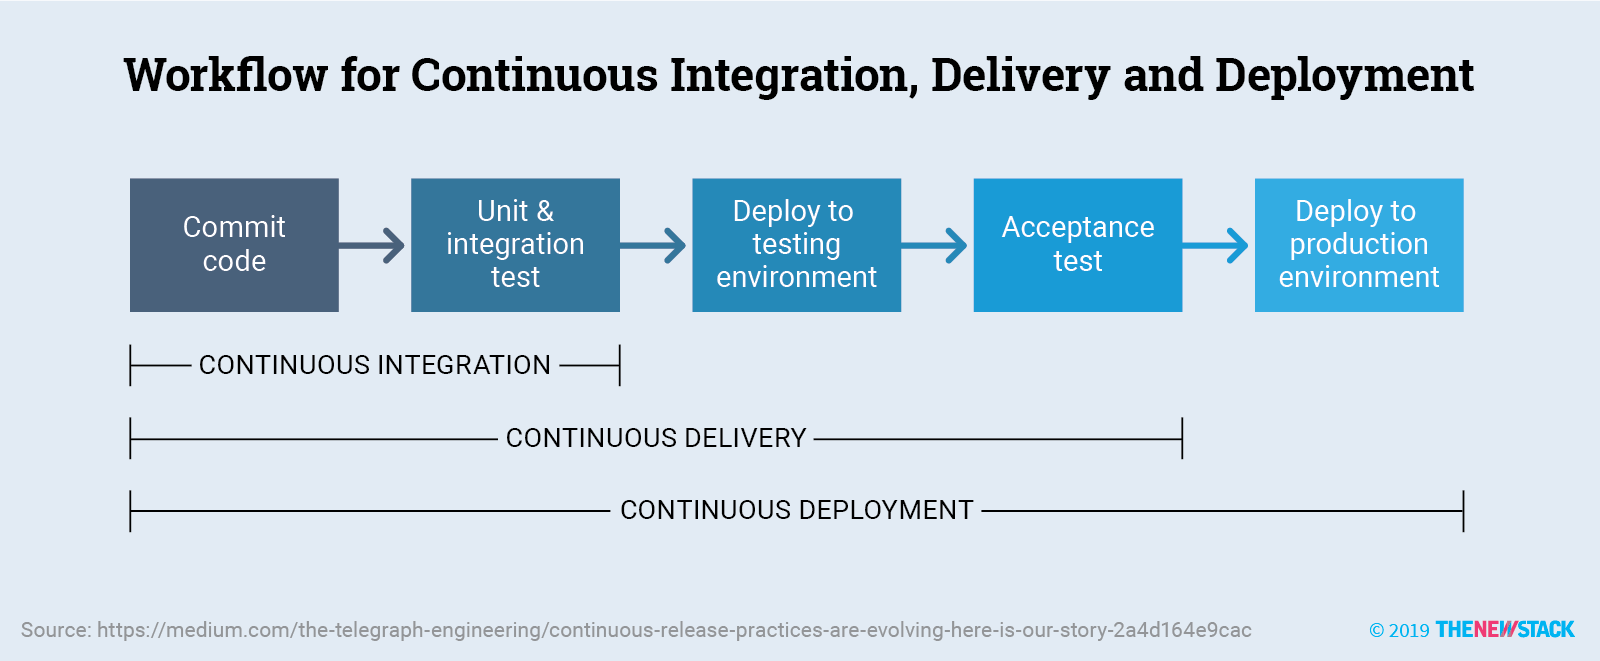 Guide to Cloud Native DevOps: Free Ebook on The New Stack